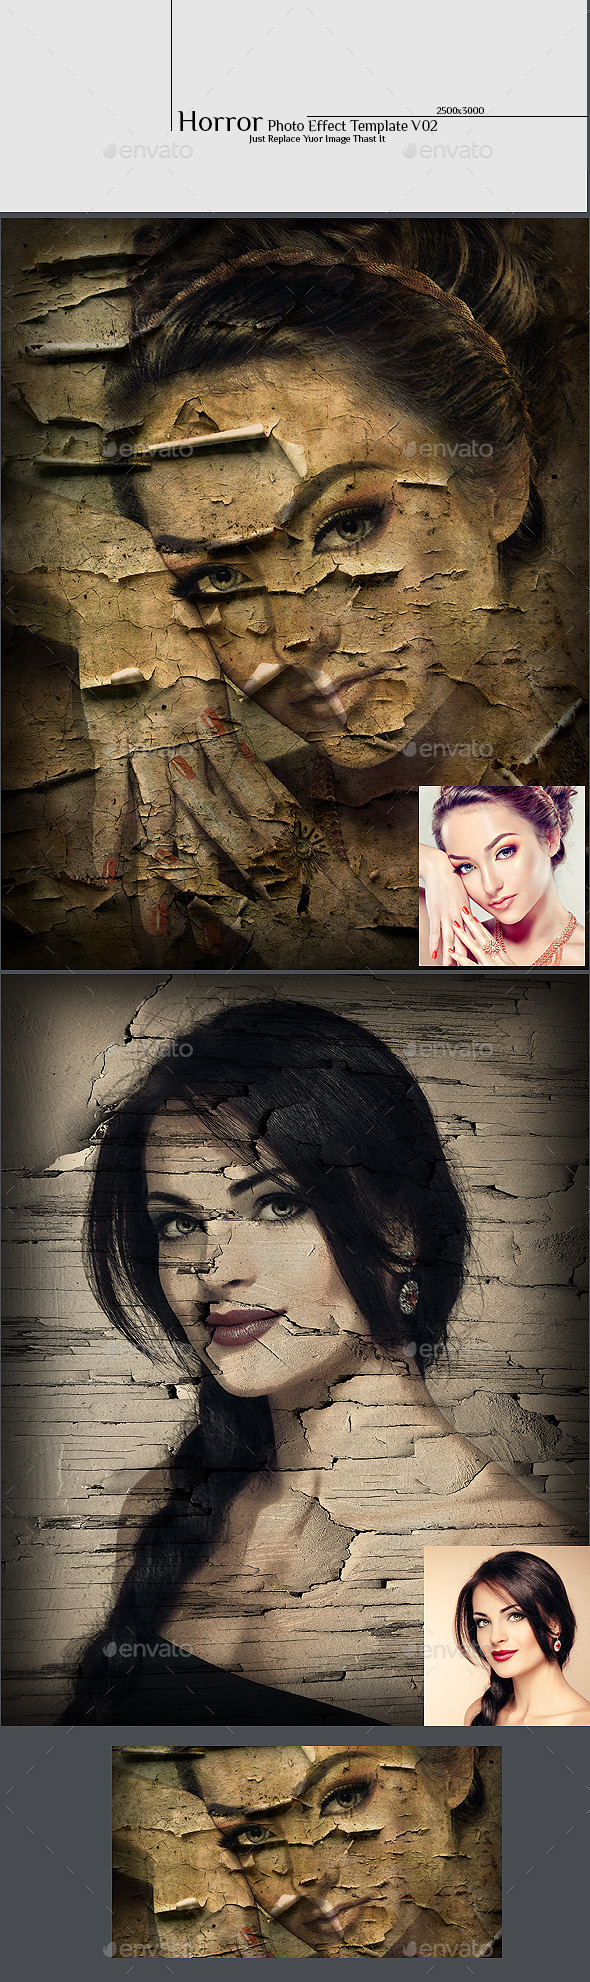 Horror Photo Effect Template v02